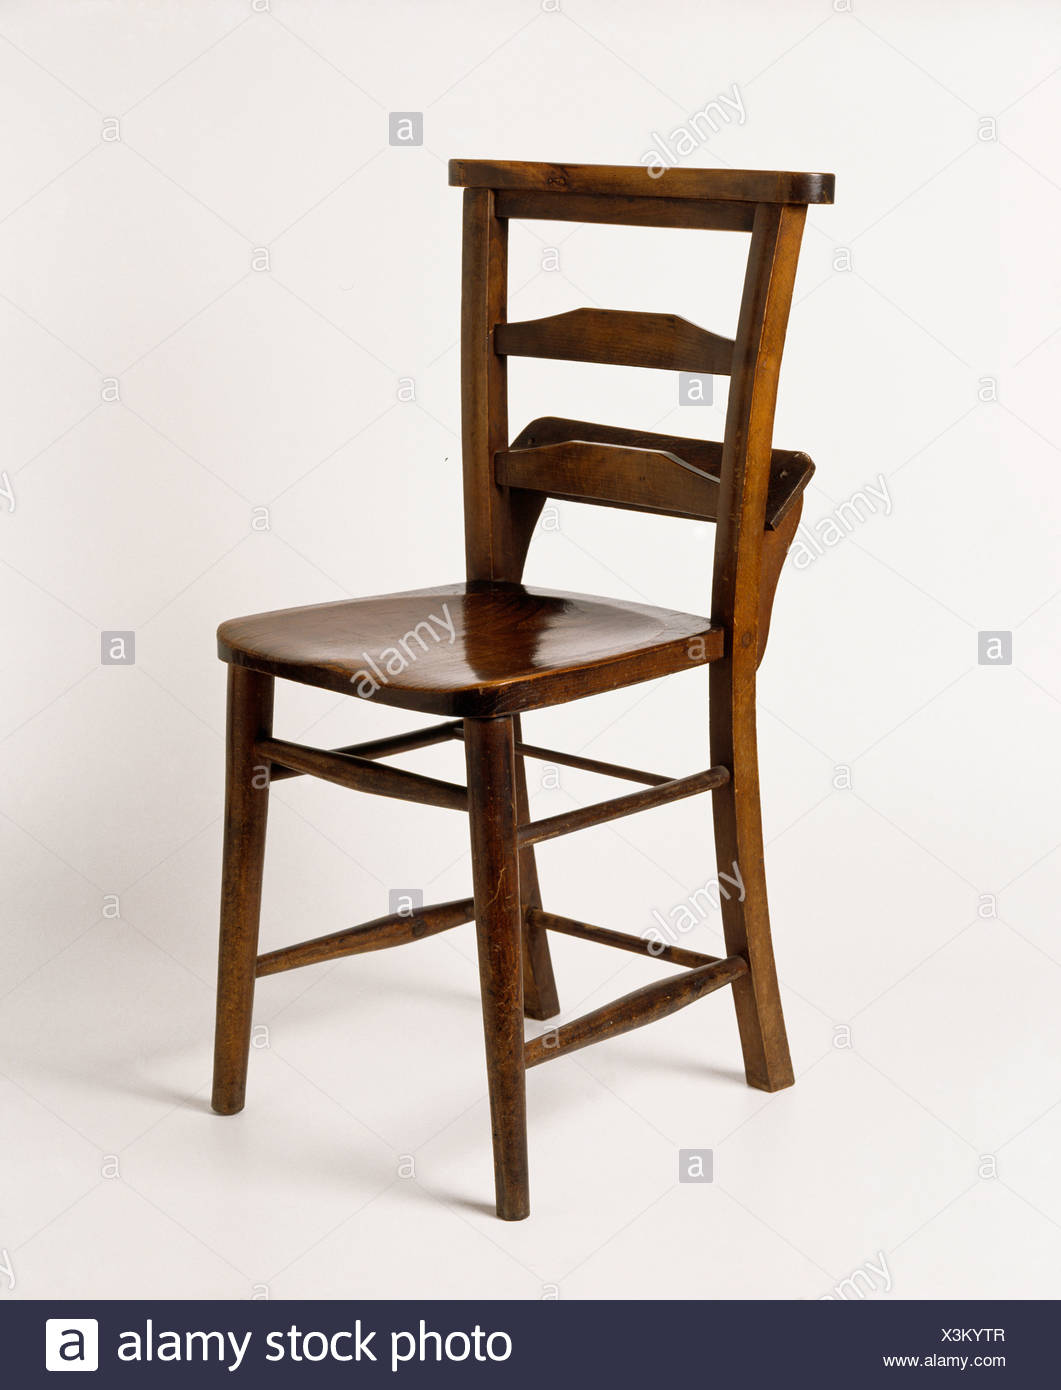 Strange Close Up Of Antique Victorian Wooden Chair Stock Photo Ocoug Best Dining Table And Chair Ideas Images Ocougorg